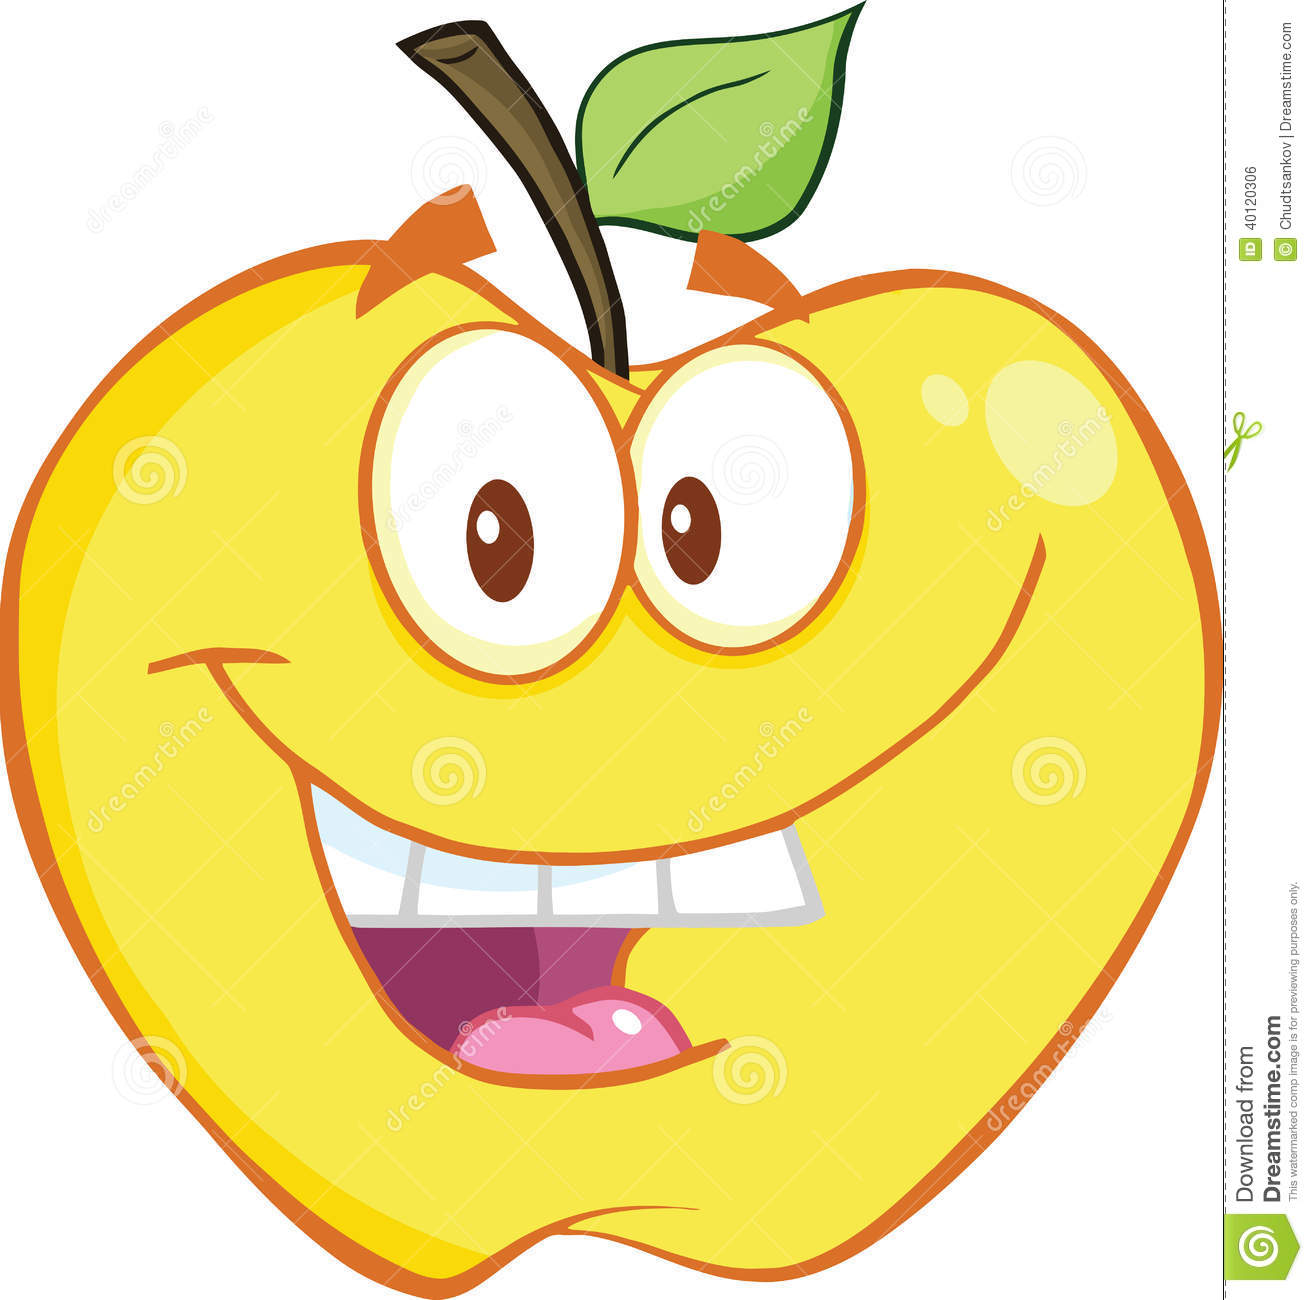 Apples clipart animated.  cool apple clip